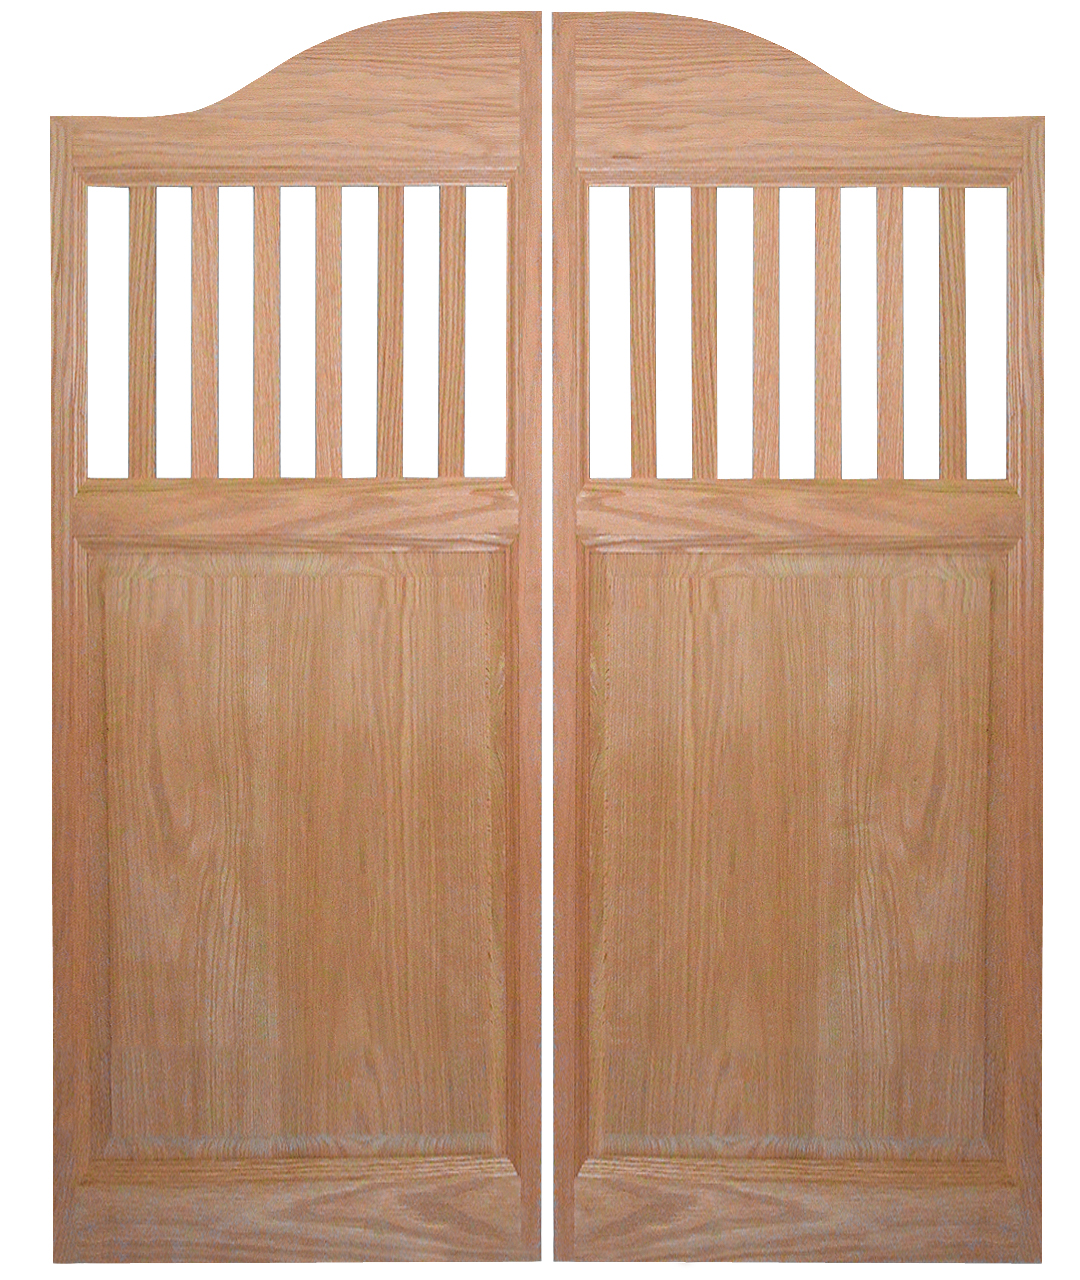 oak-mission-spindles-saloon-door.jpg